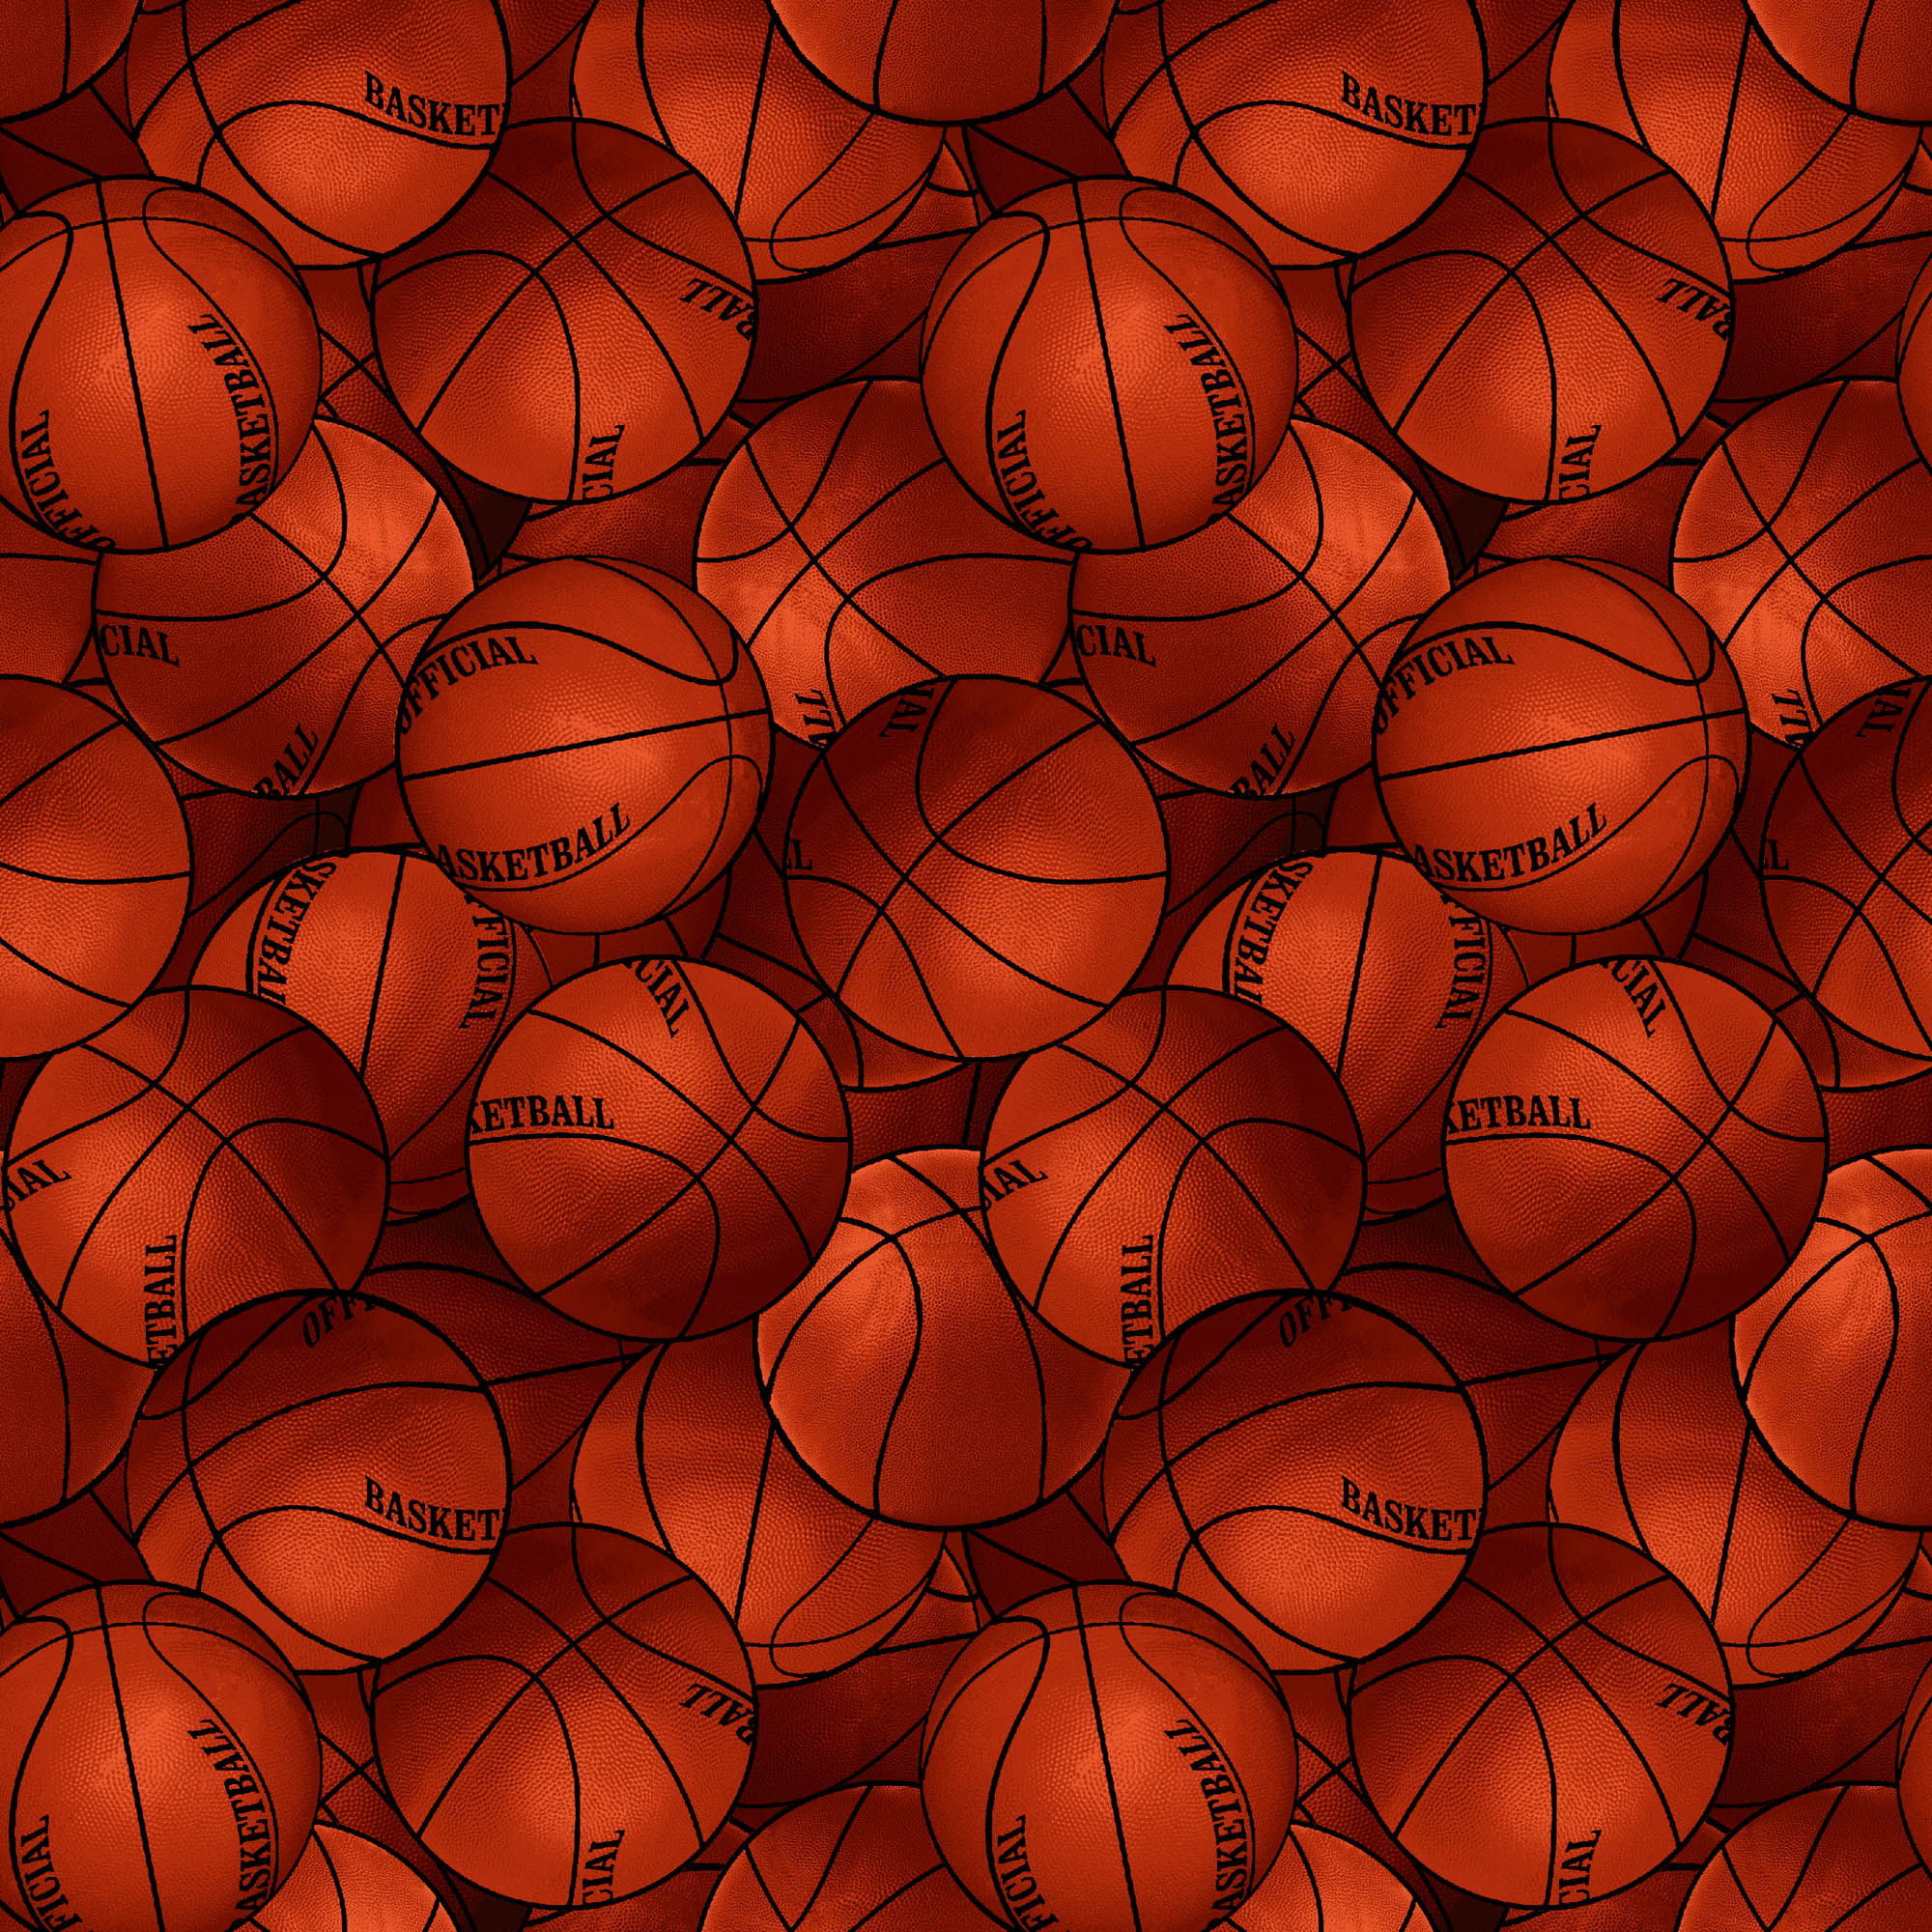 David Textiles Cotton Precut Fabric Packed Basketballs 1 Yd X 44 Inches